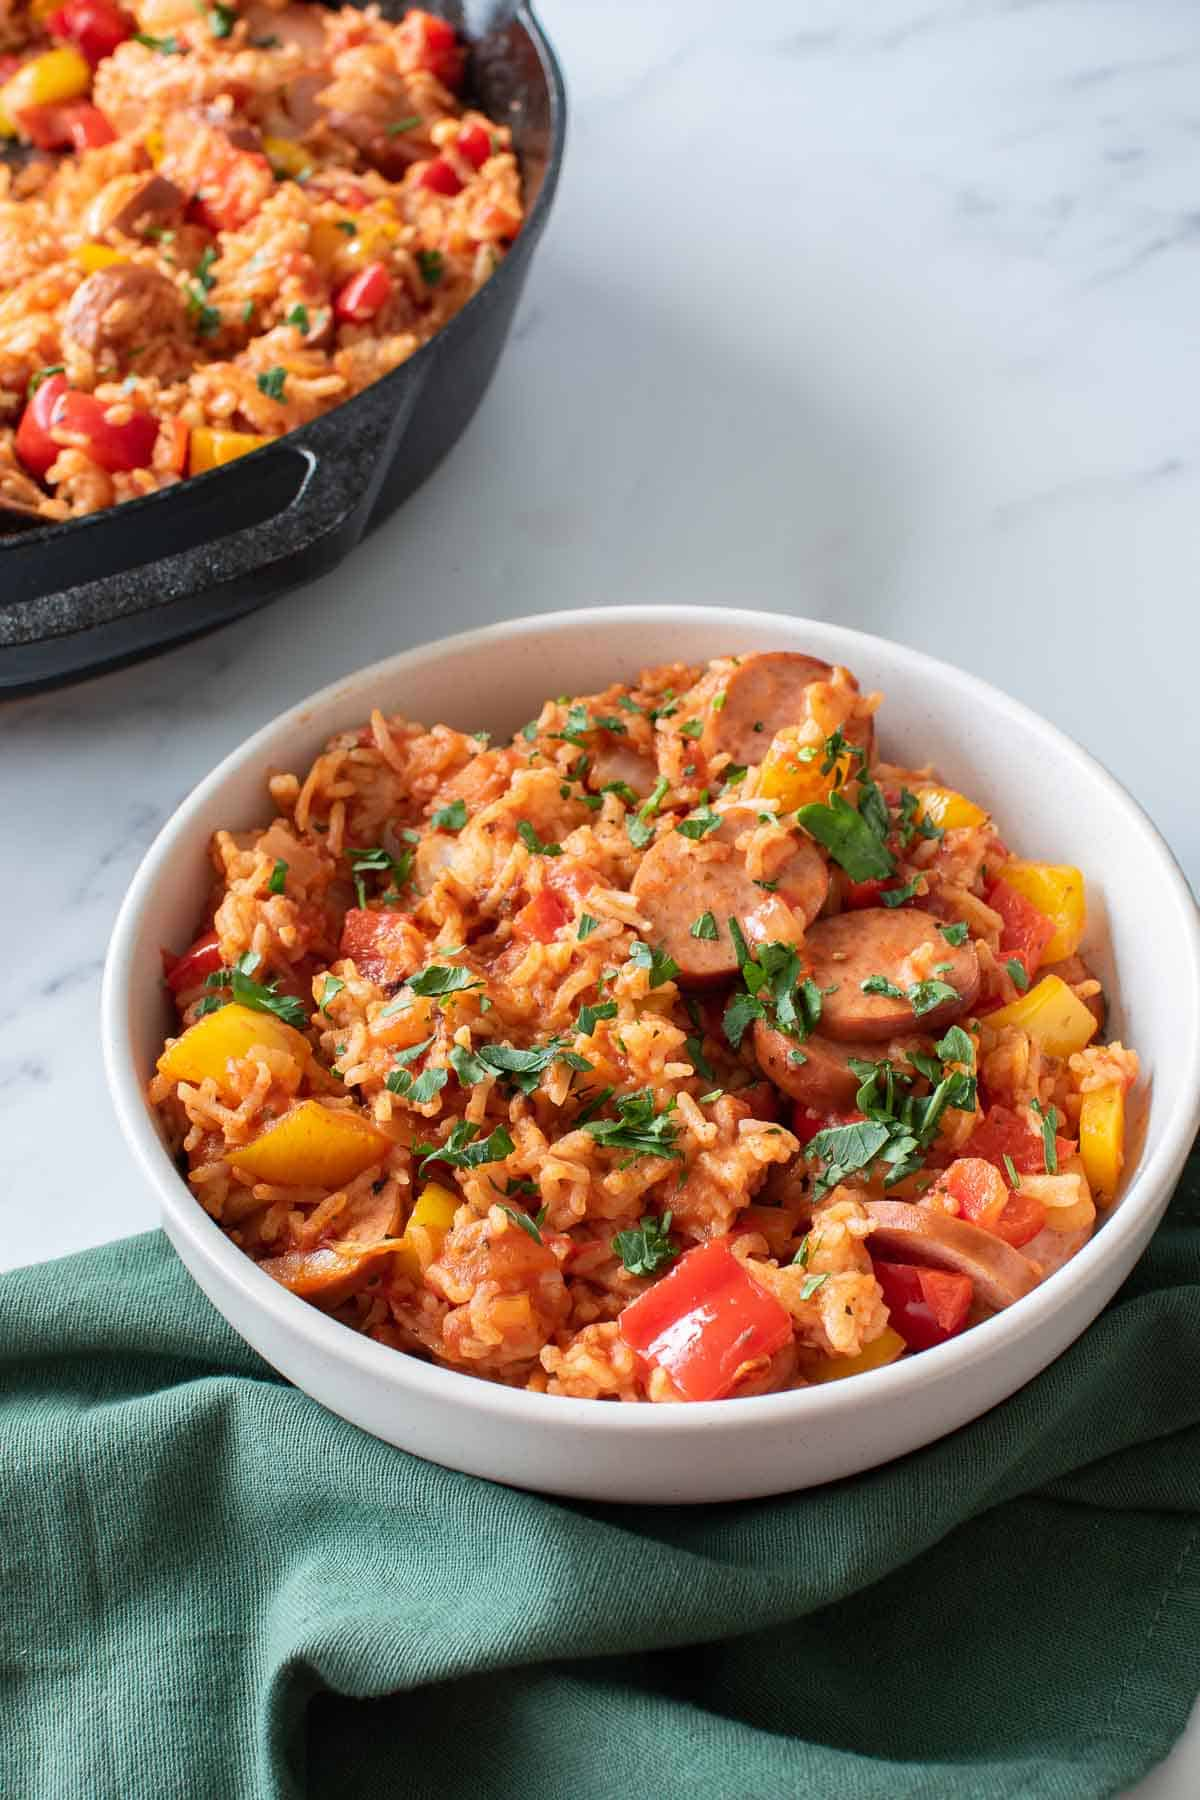 Sausage and rice skillet in a bowl.